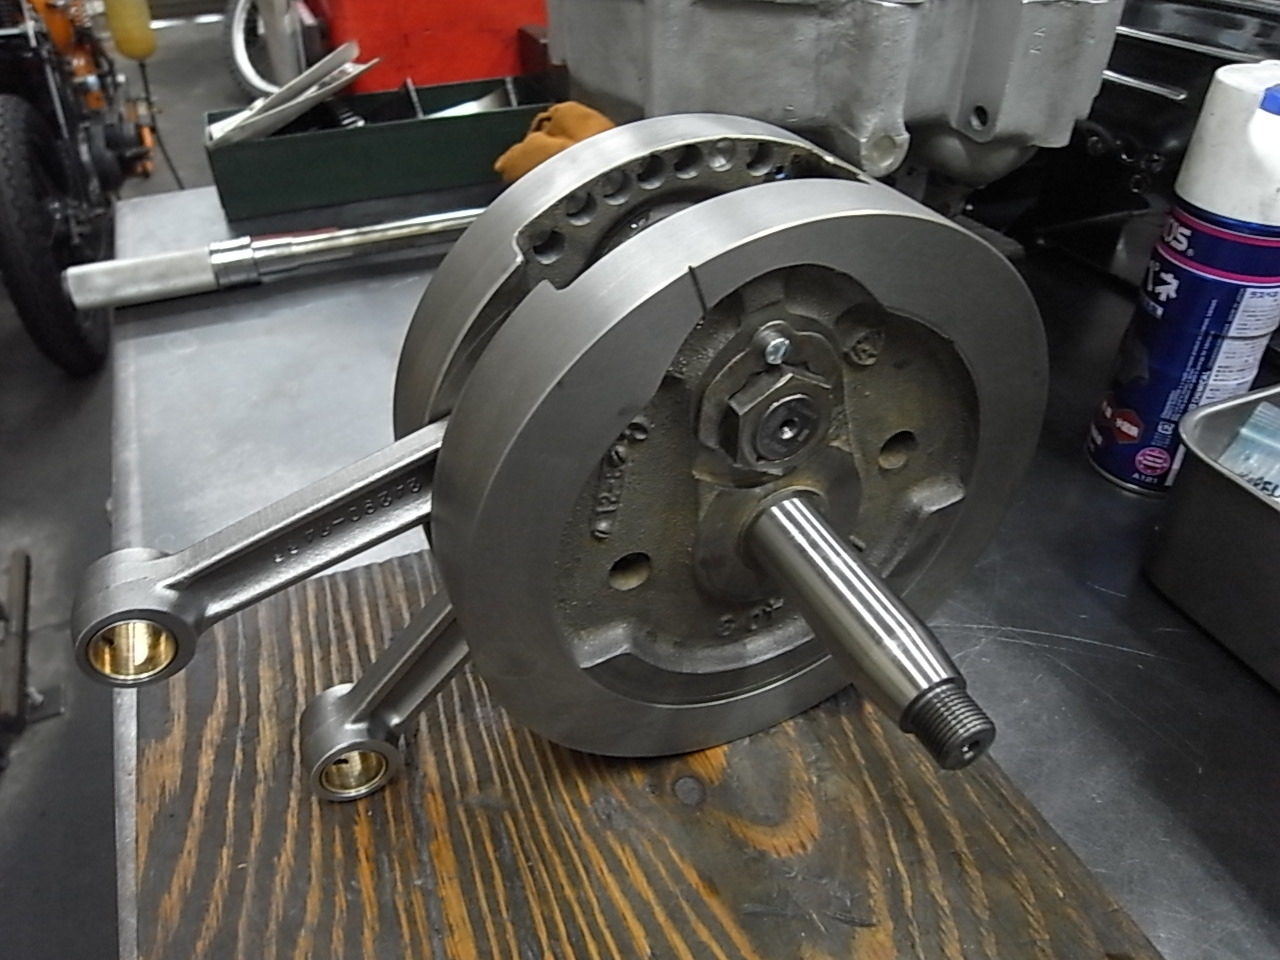 39EL FLYWHEEL_a0186803_19314099.jpg